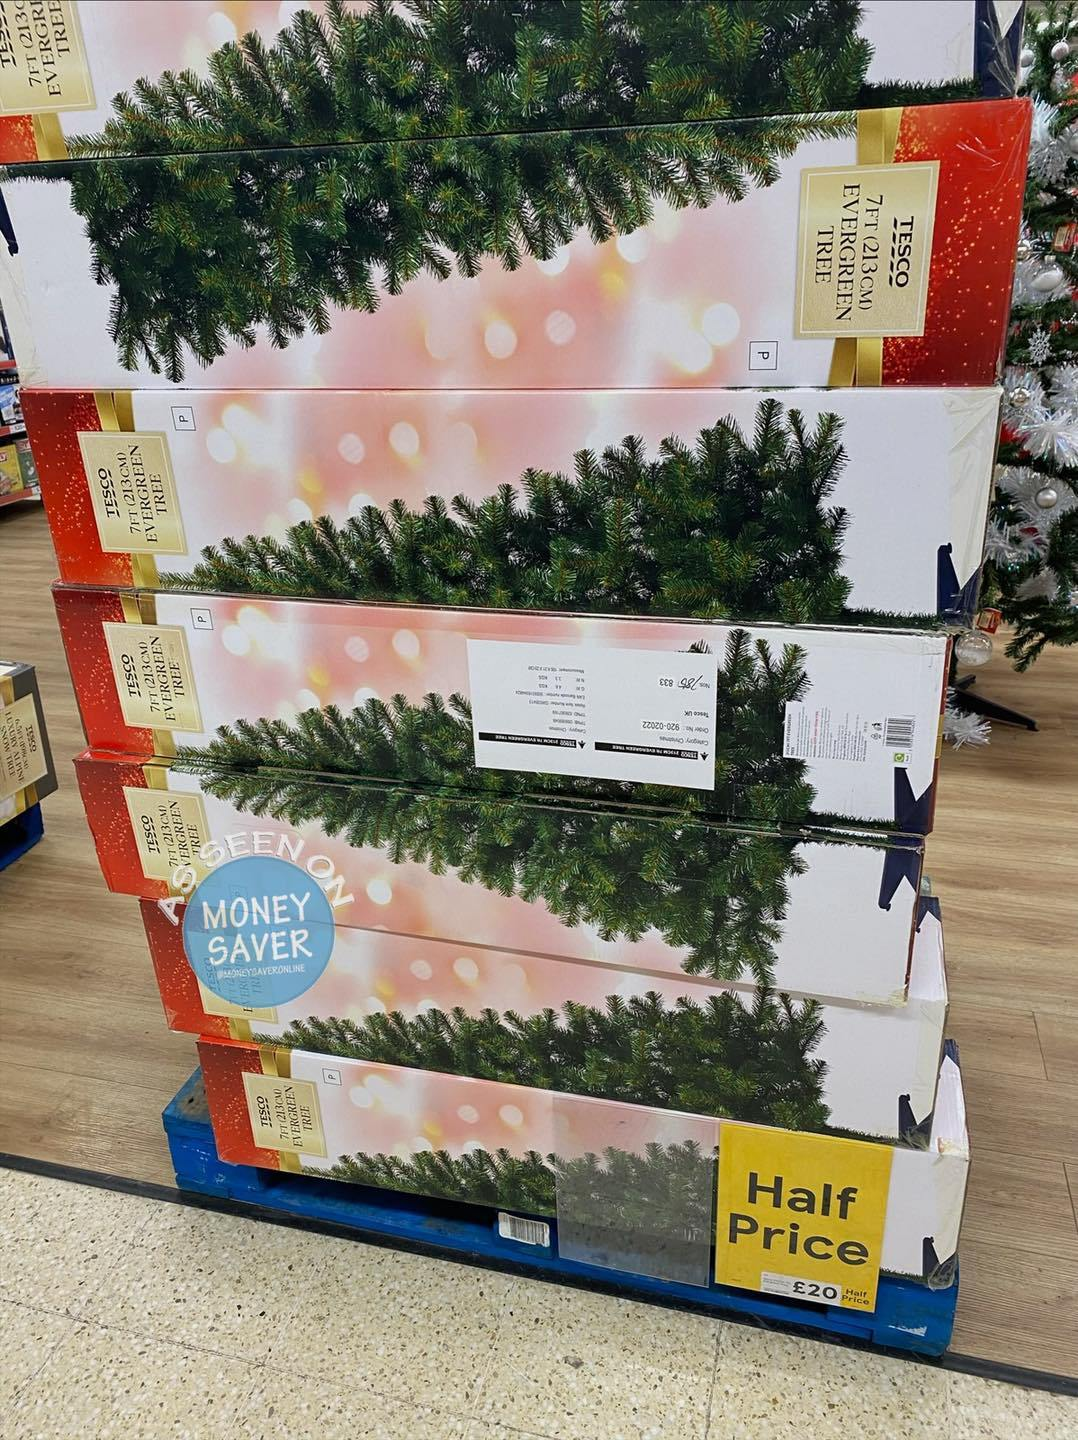 Tesco has slashed the price of Christmas trees and lights by up to 50%